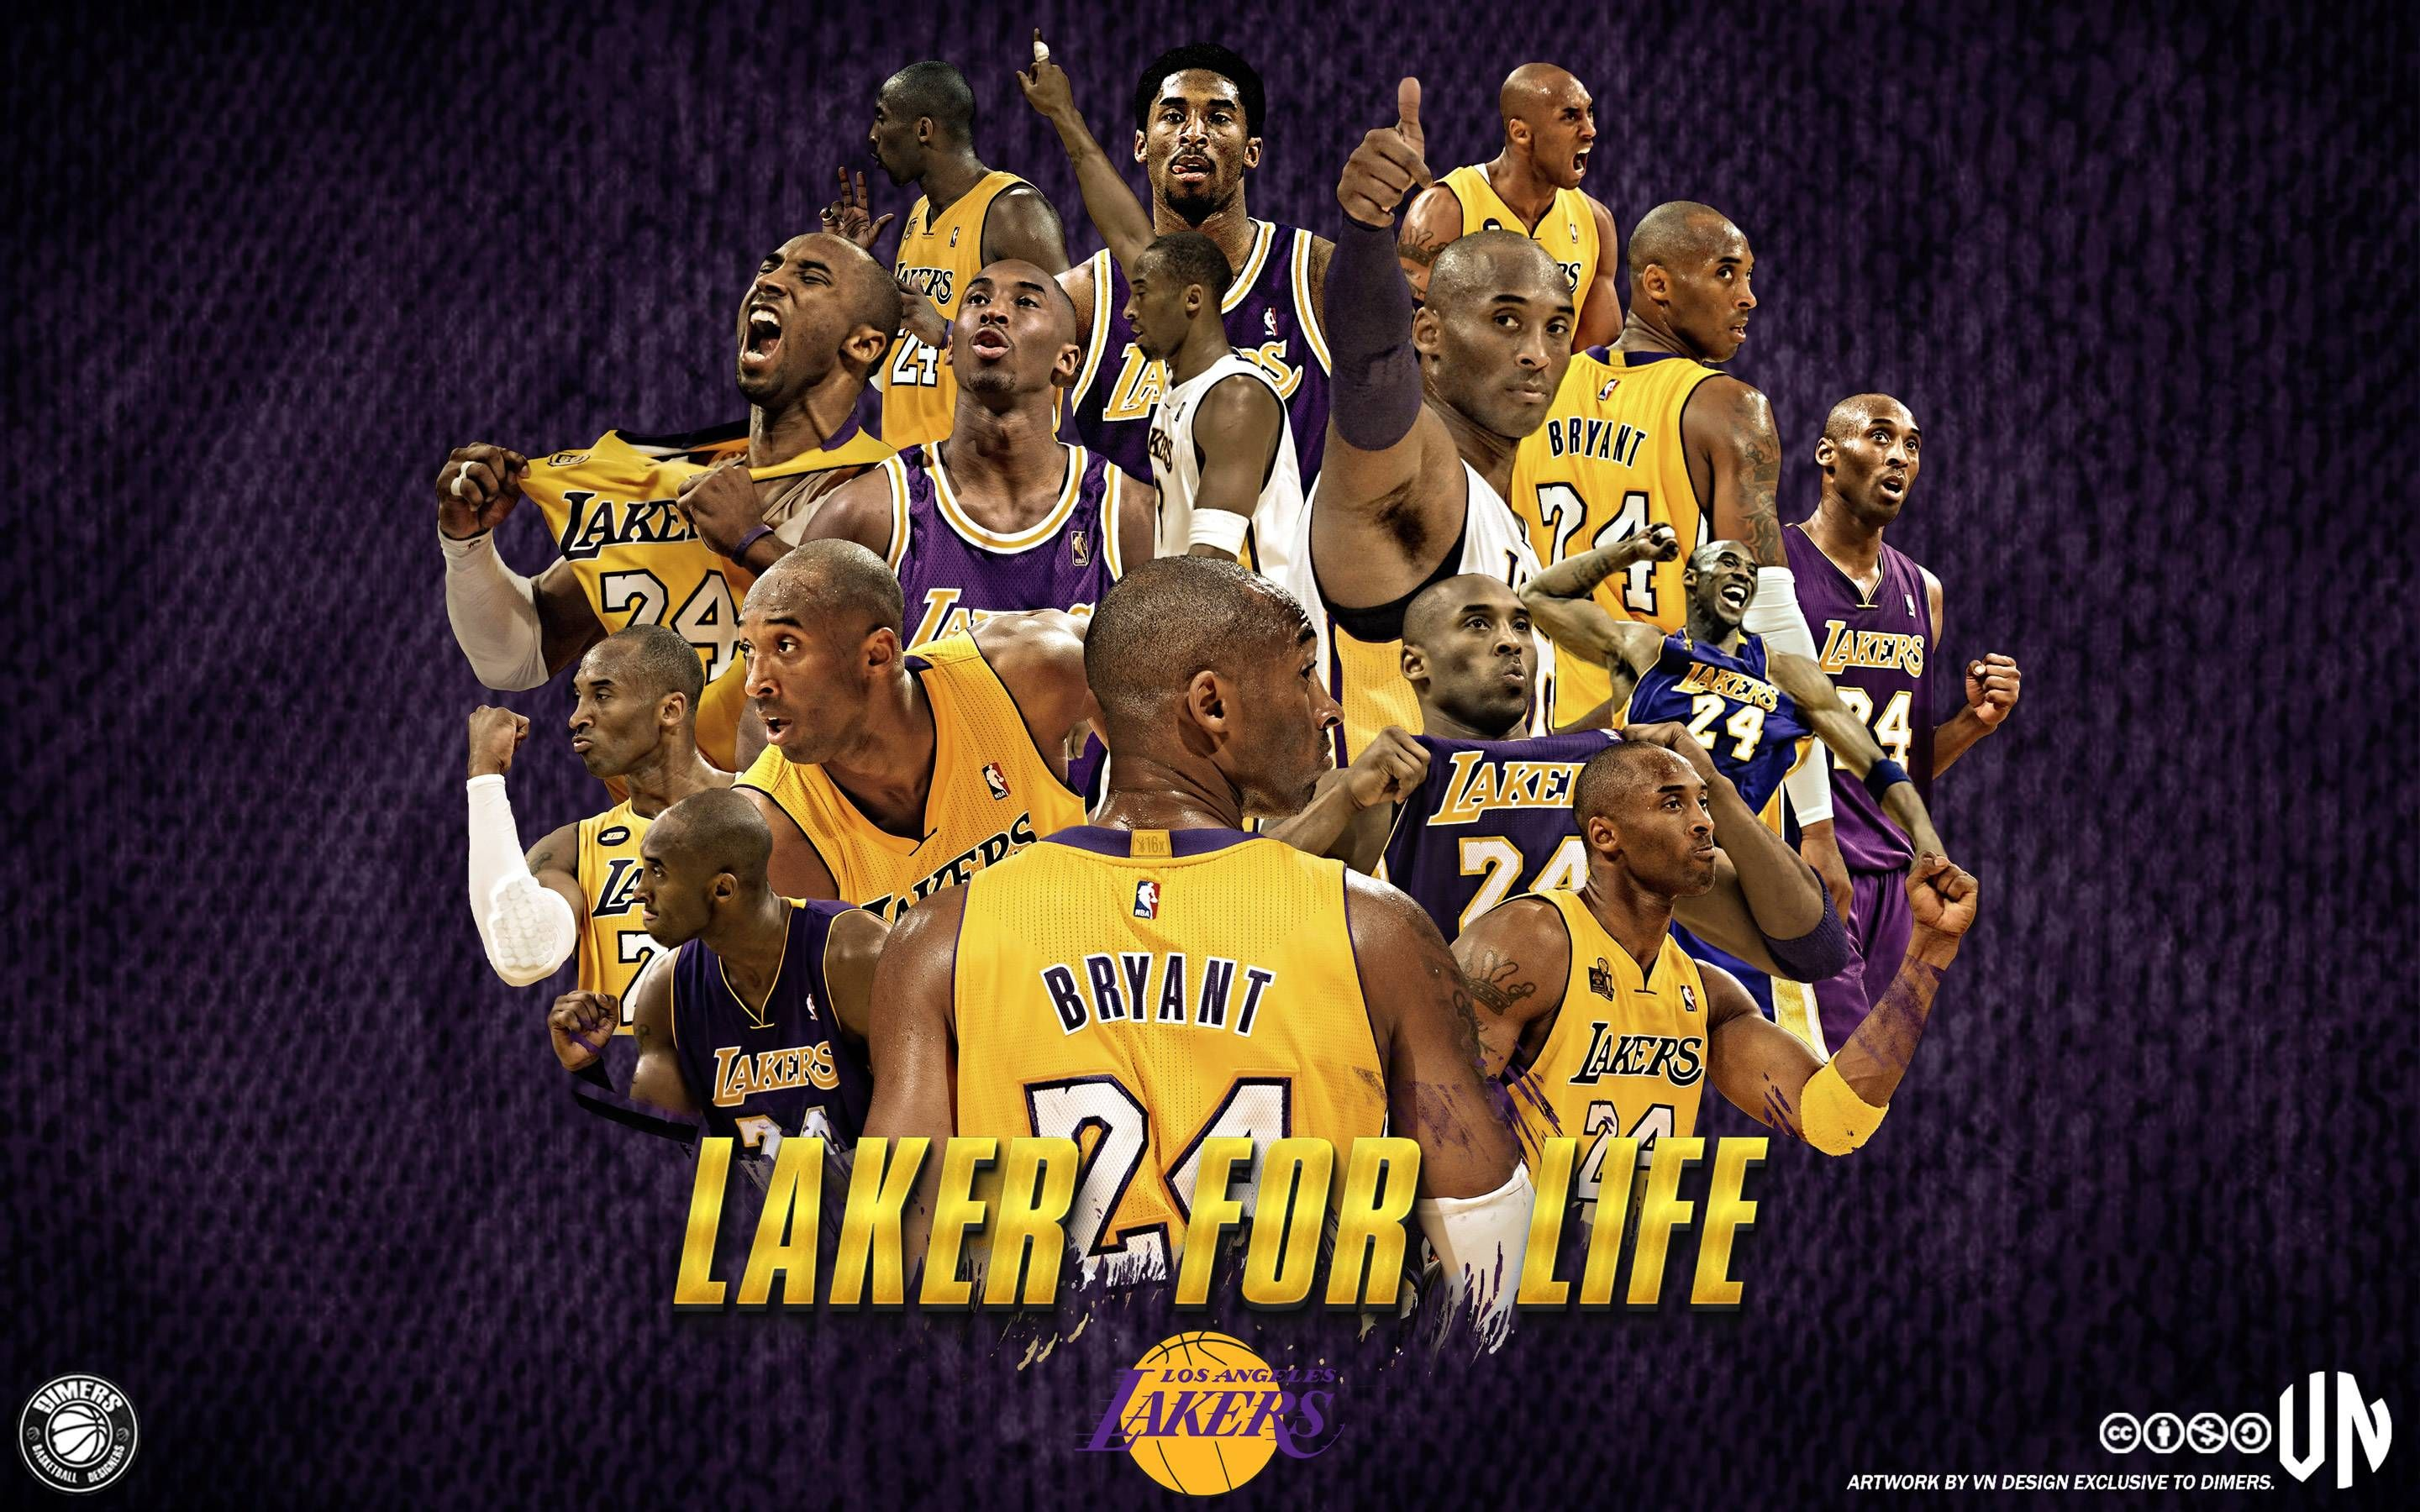 Lakers Wallpaper Kobe Bryant Kobe Bryant Wallpaper Nba Wallpapers Lakers Wallpaper